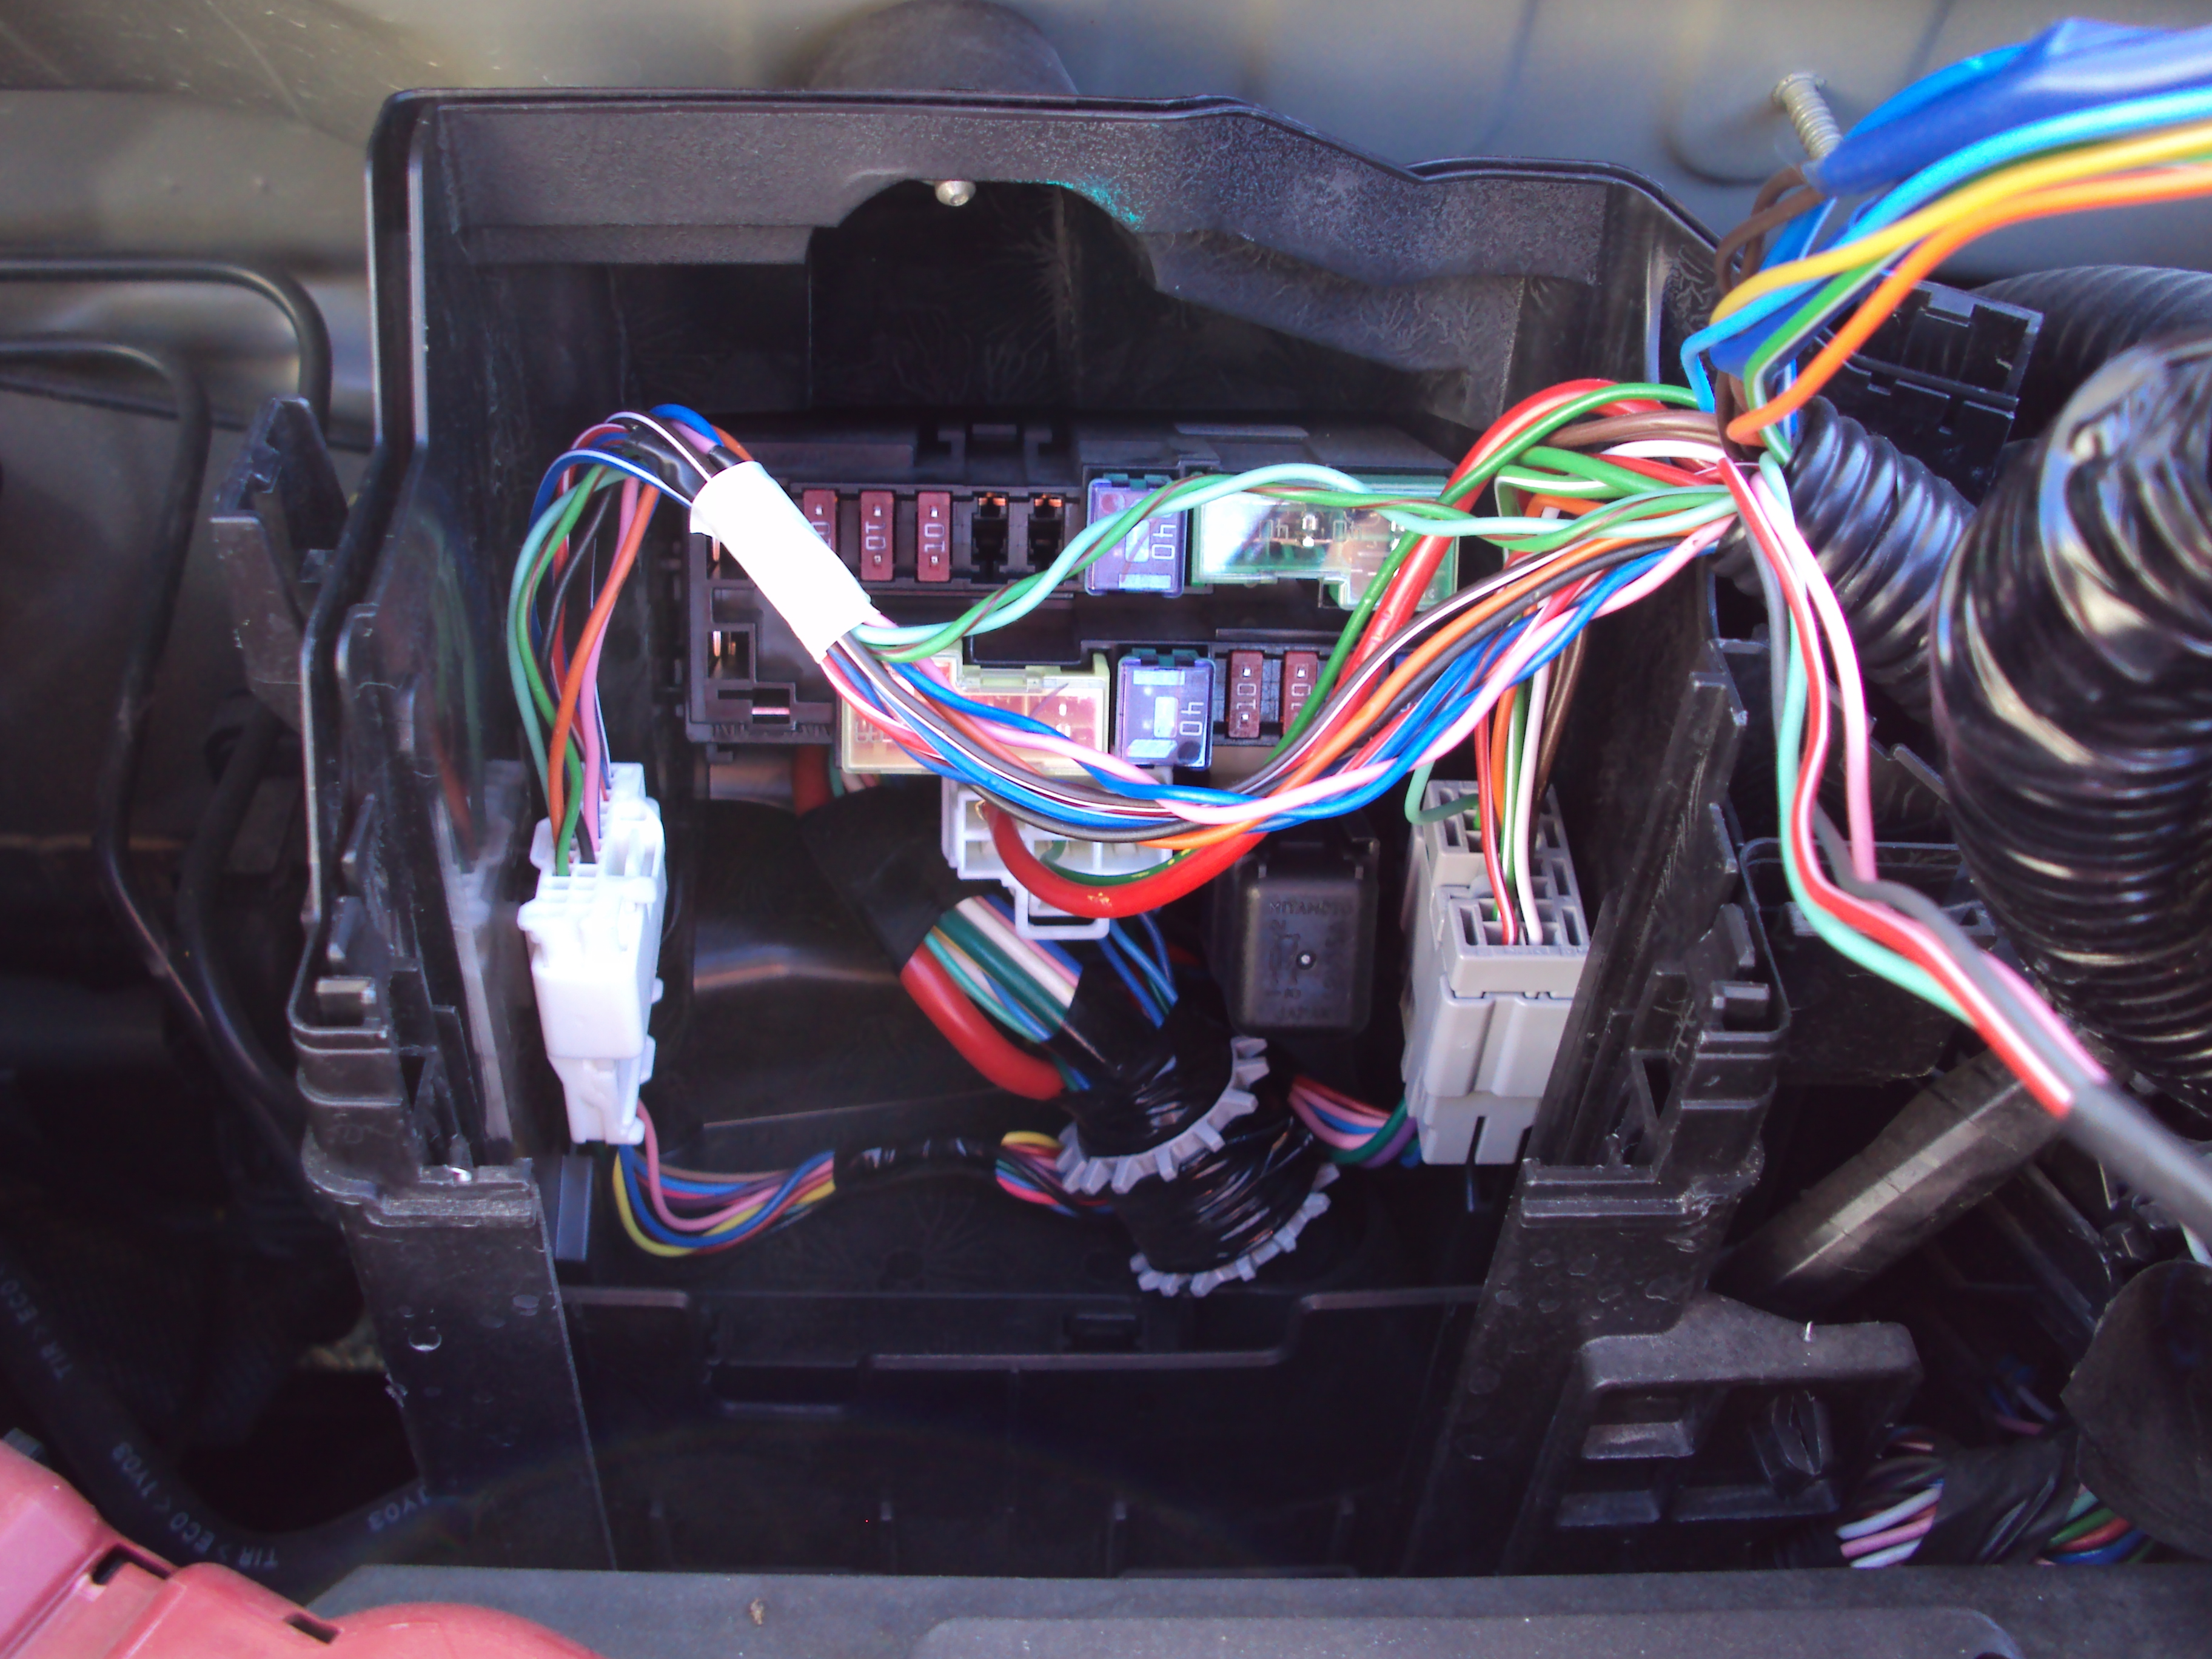 Guide to find all the fuses interior fuse box and engine bay fuse ...